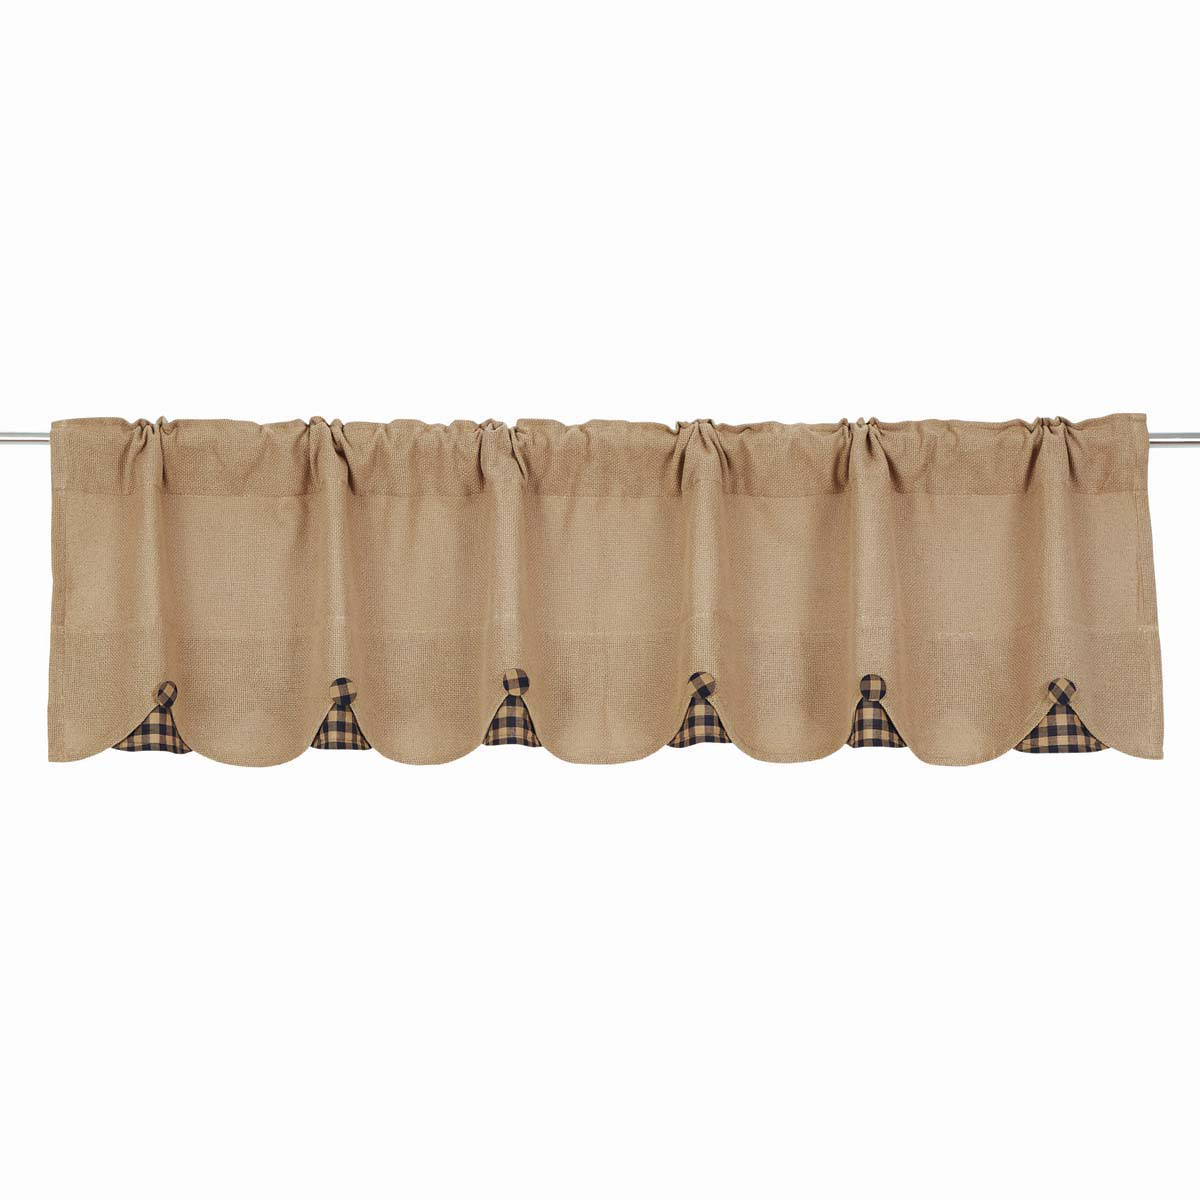 BURLAP NATURAL Valance w/Black Check - 16x72 - Country Farmhouse - VHC Brands